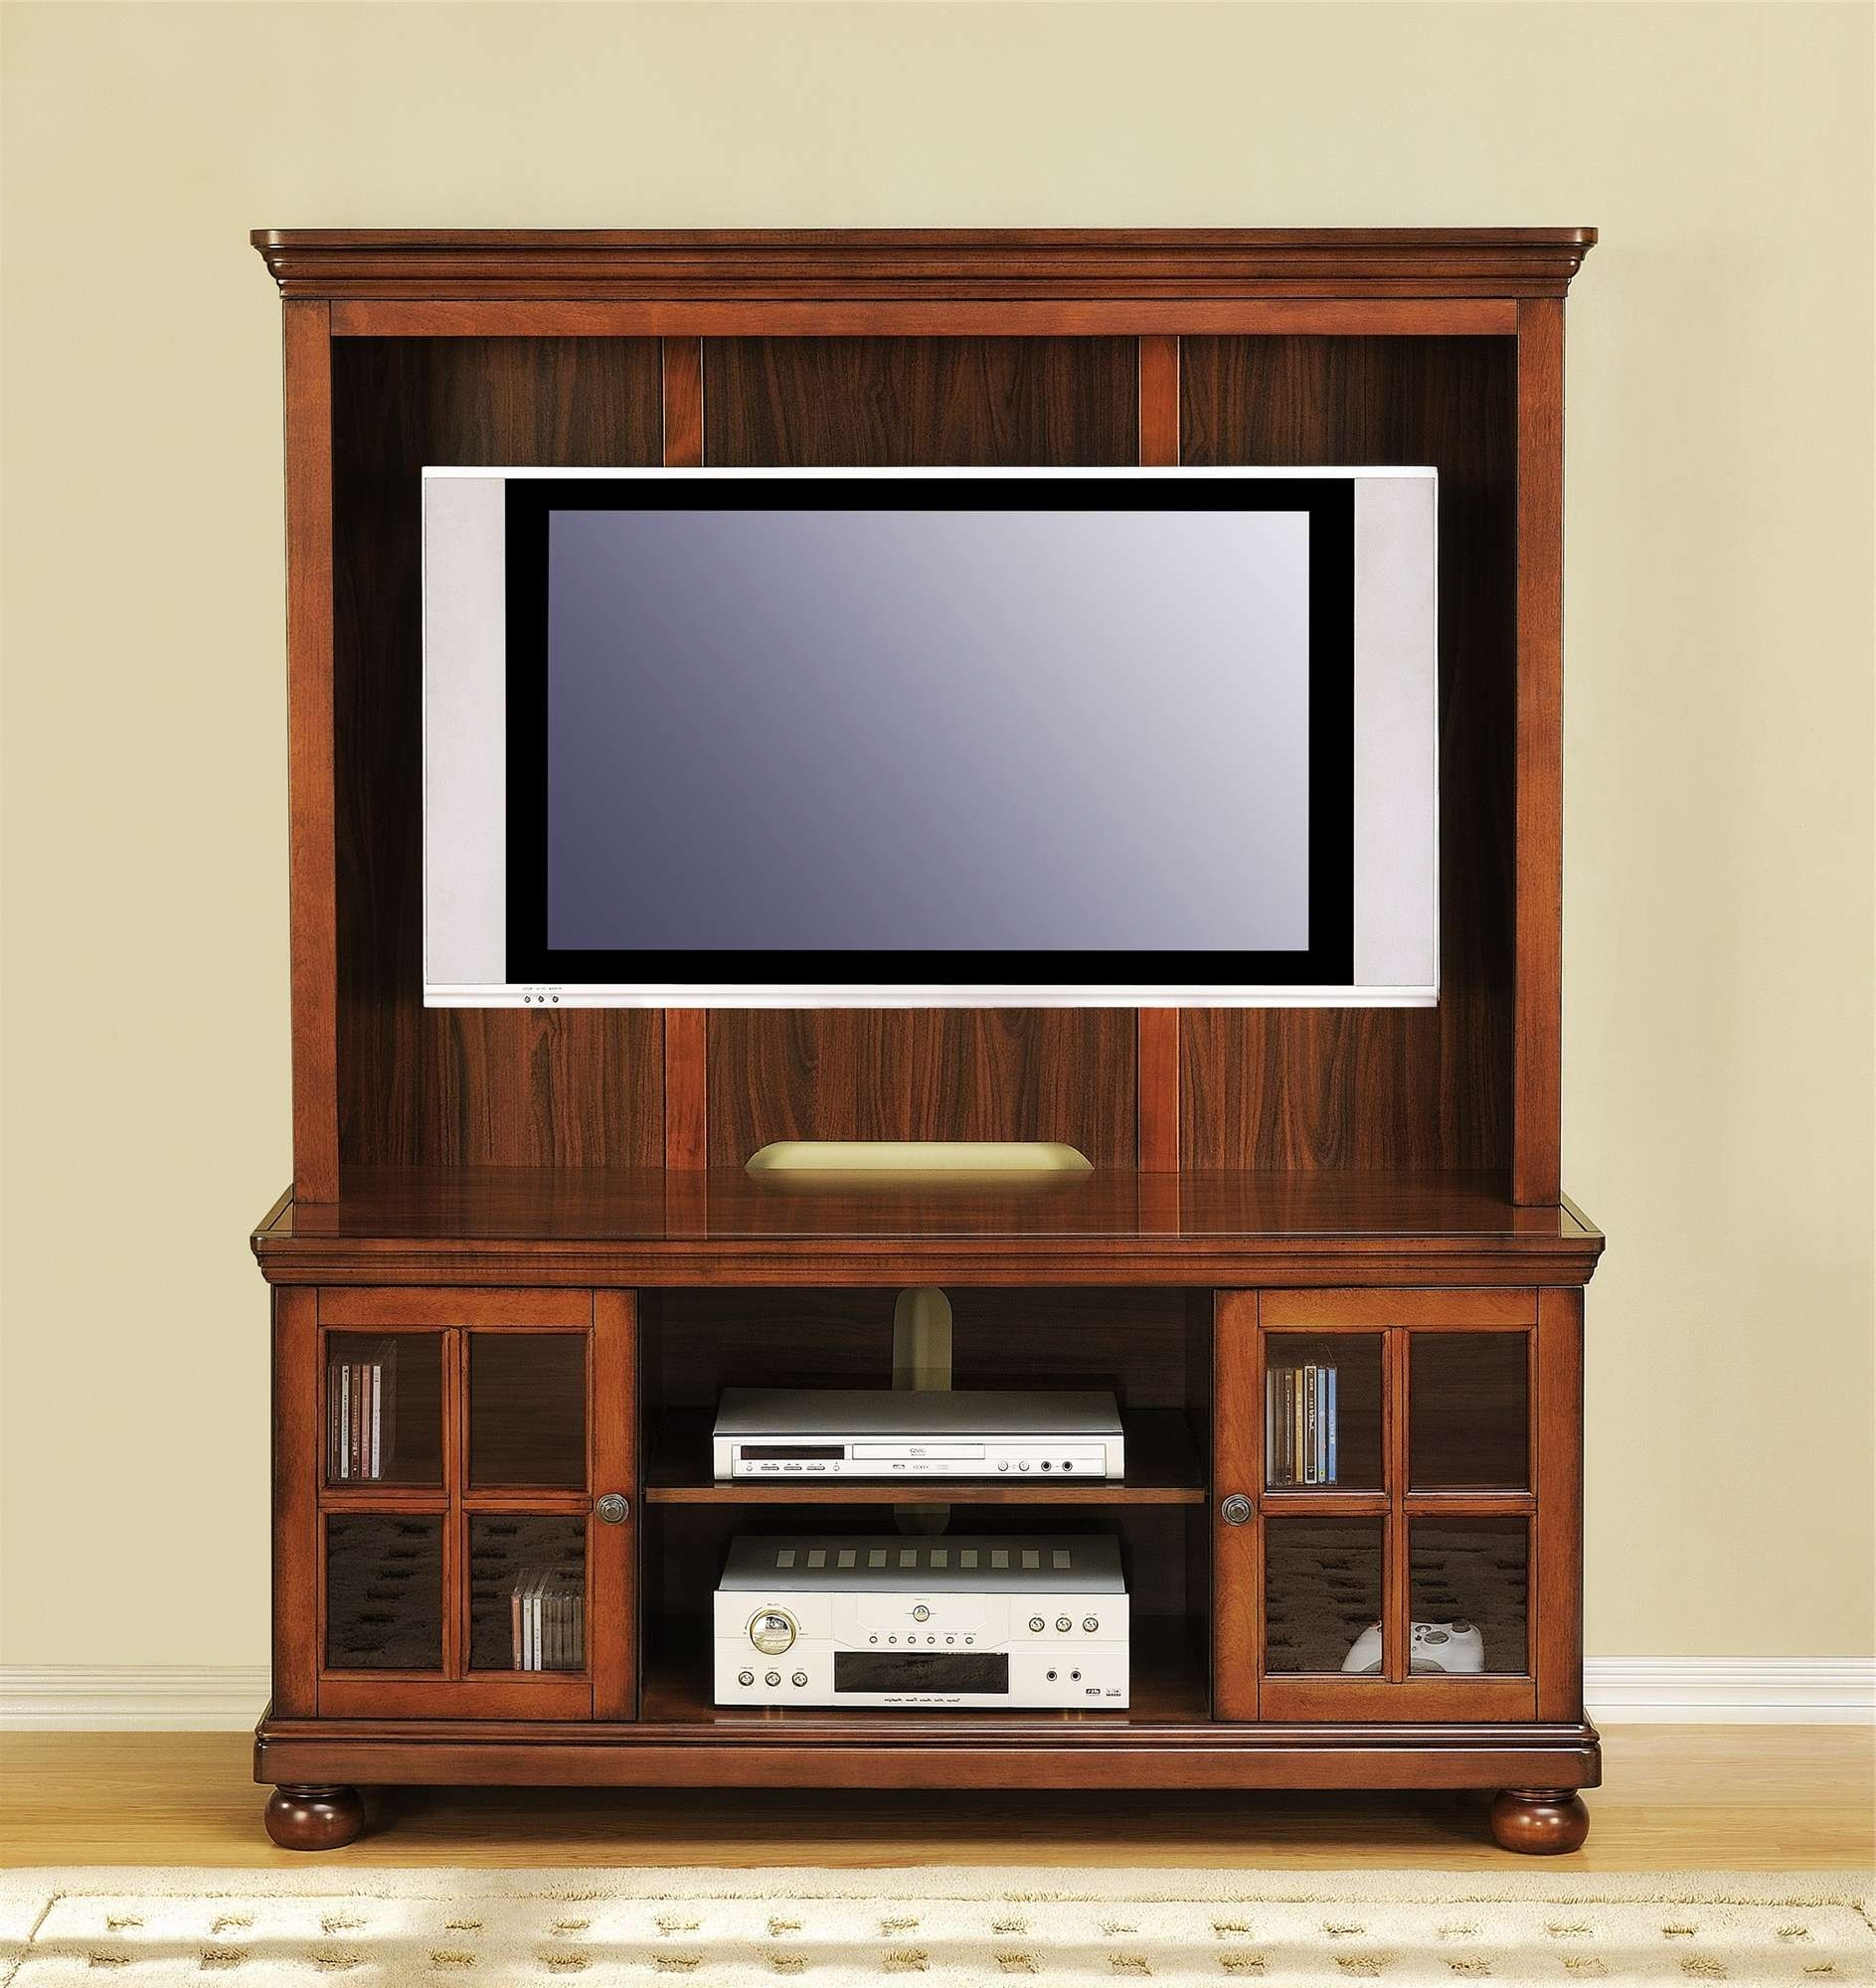 Modest Ideas Flat Screen Tv Cabinet Tall Brown Santos Mahogany Intended For Mahogany Tv Stands Furniture (View 10 of 15)